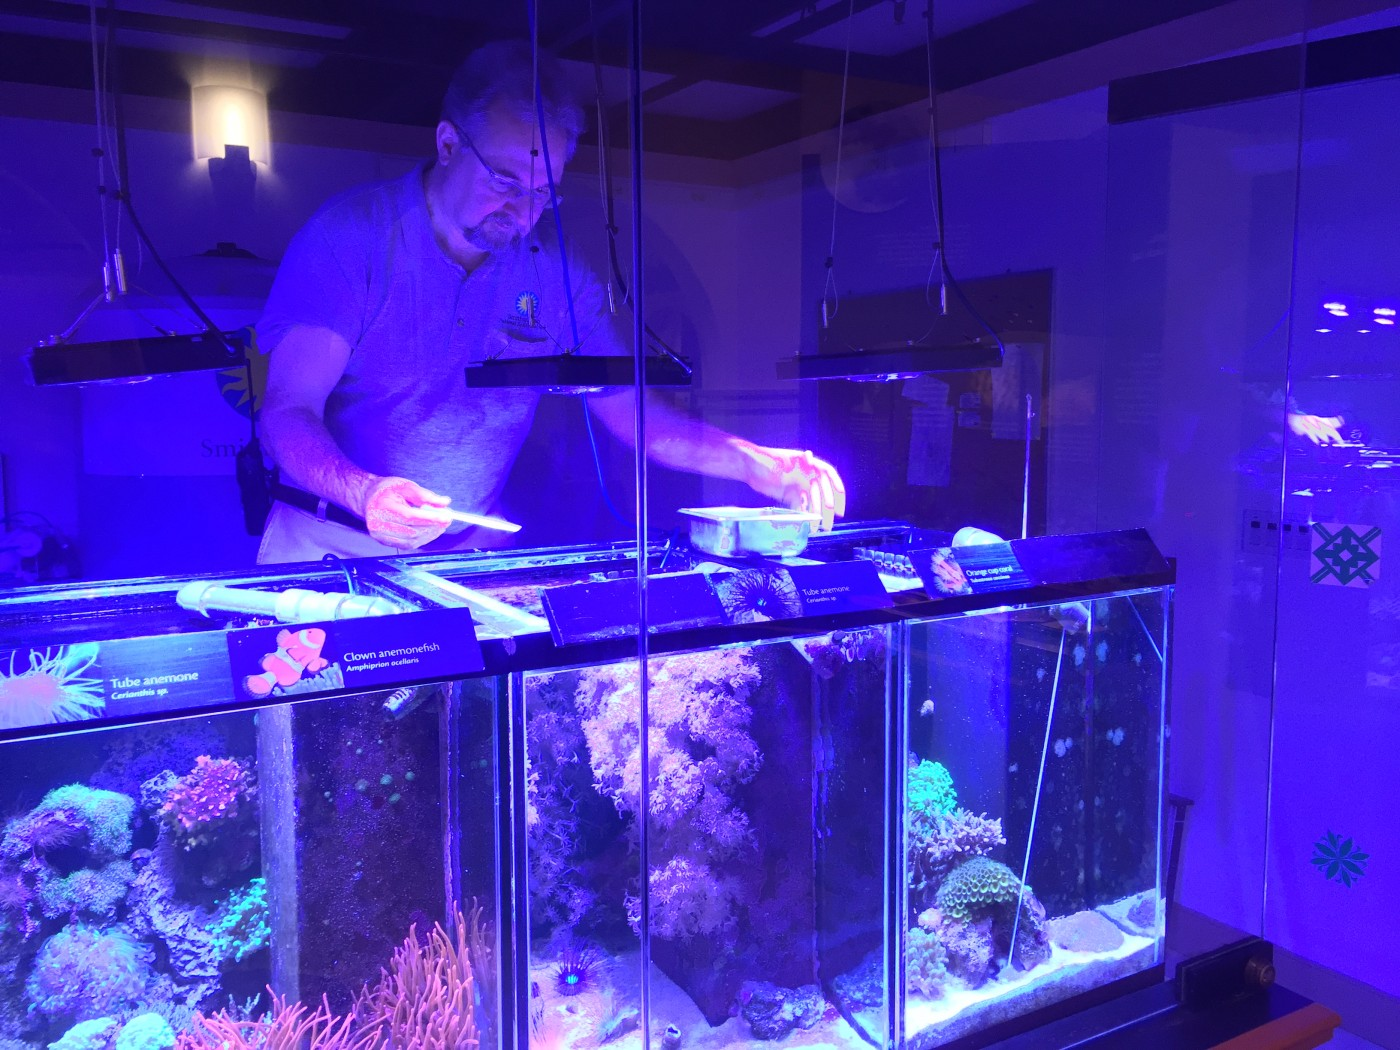 A zookeeper looks into a tank of corals